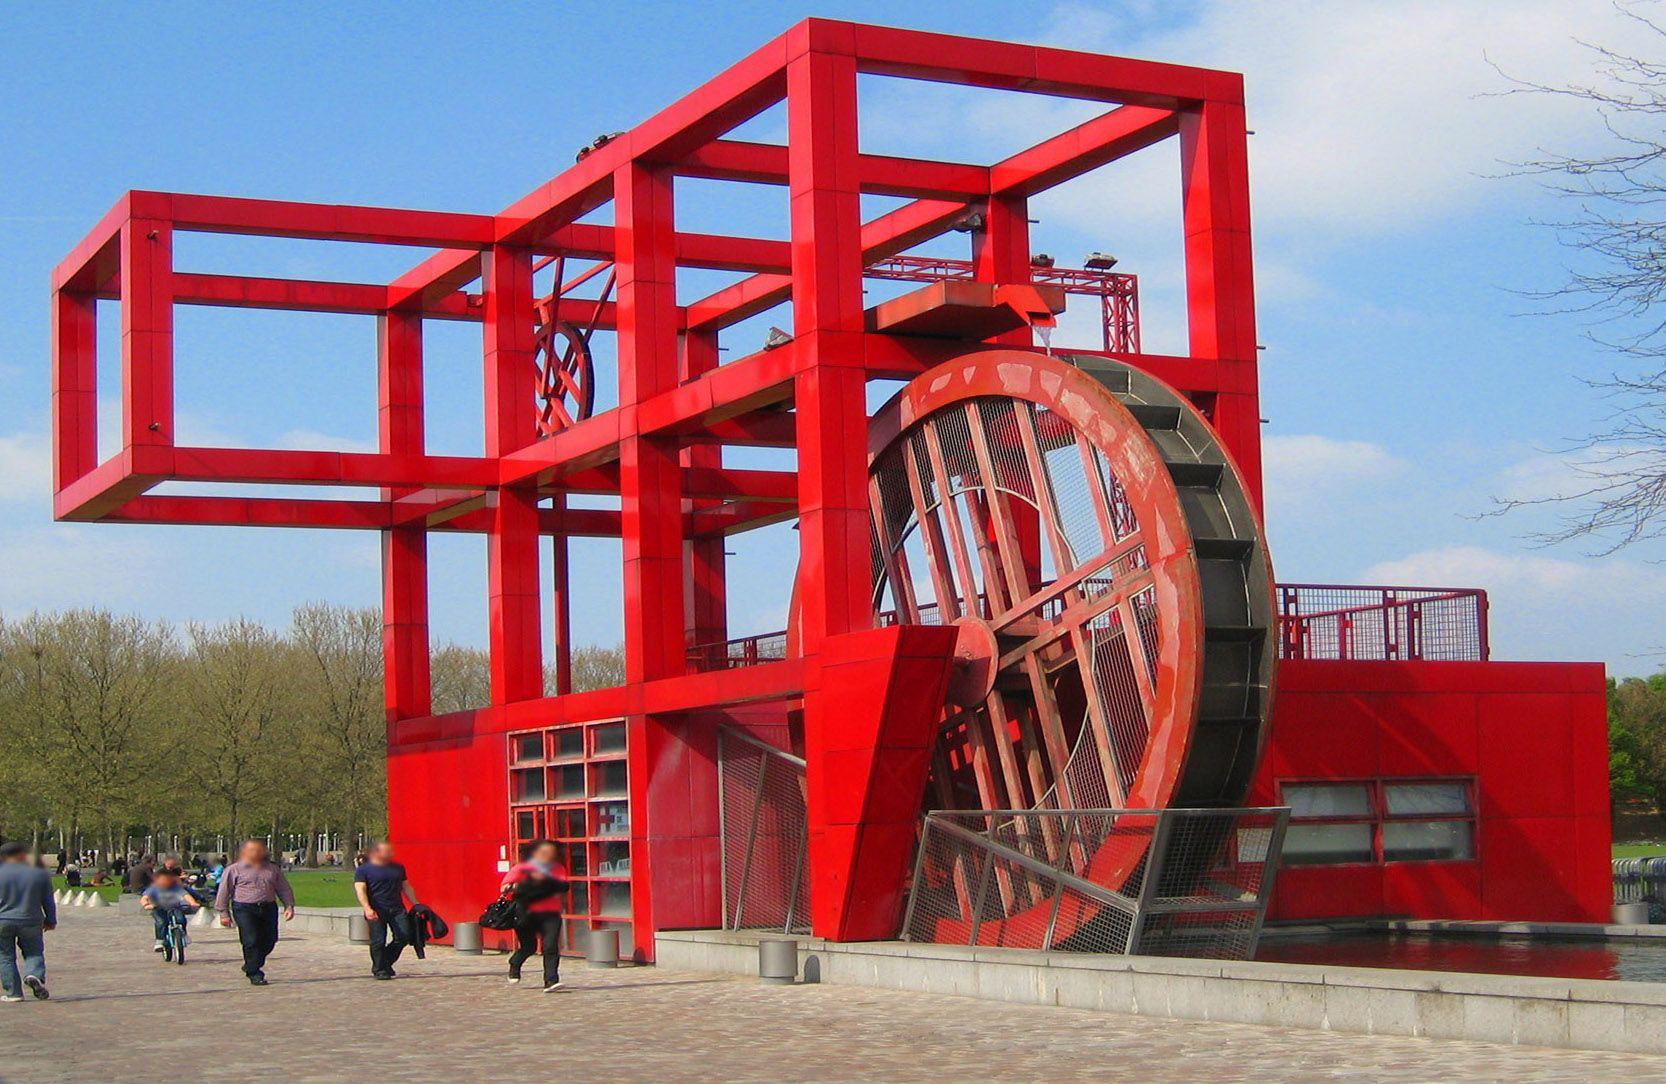 bernard tschumi parc de la villette paris france deconstructivist architecture pinterest. Black Bedroom Furniture Sets. Home Design Ideas